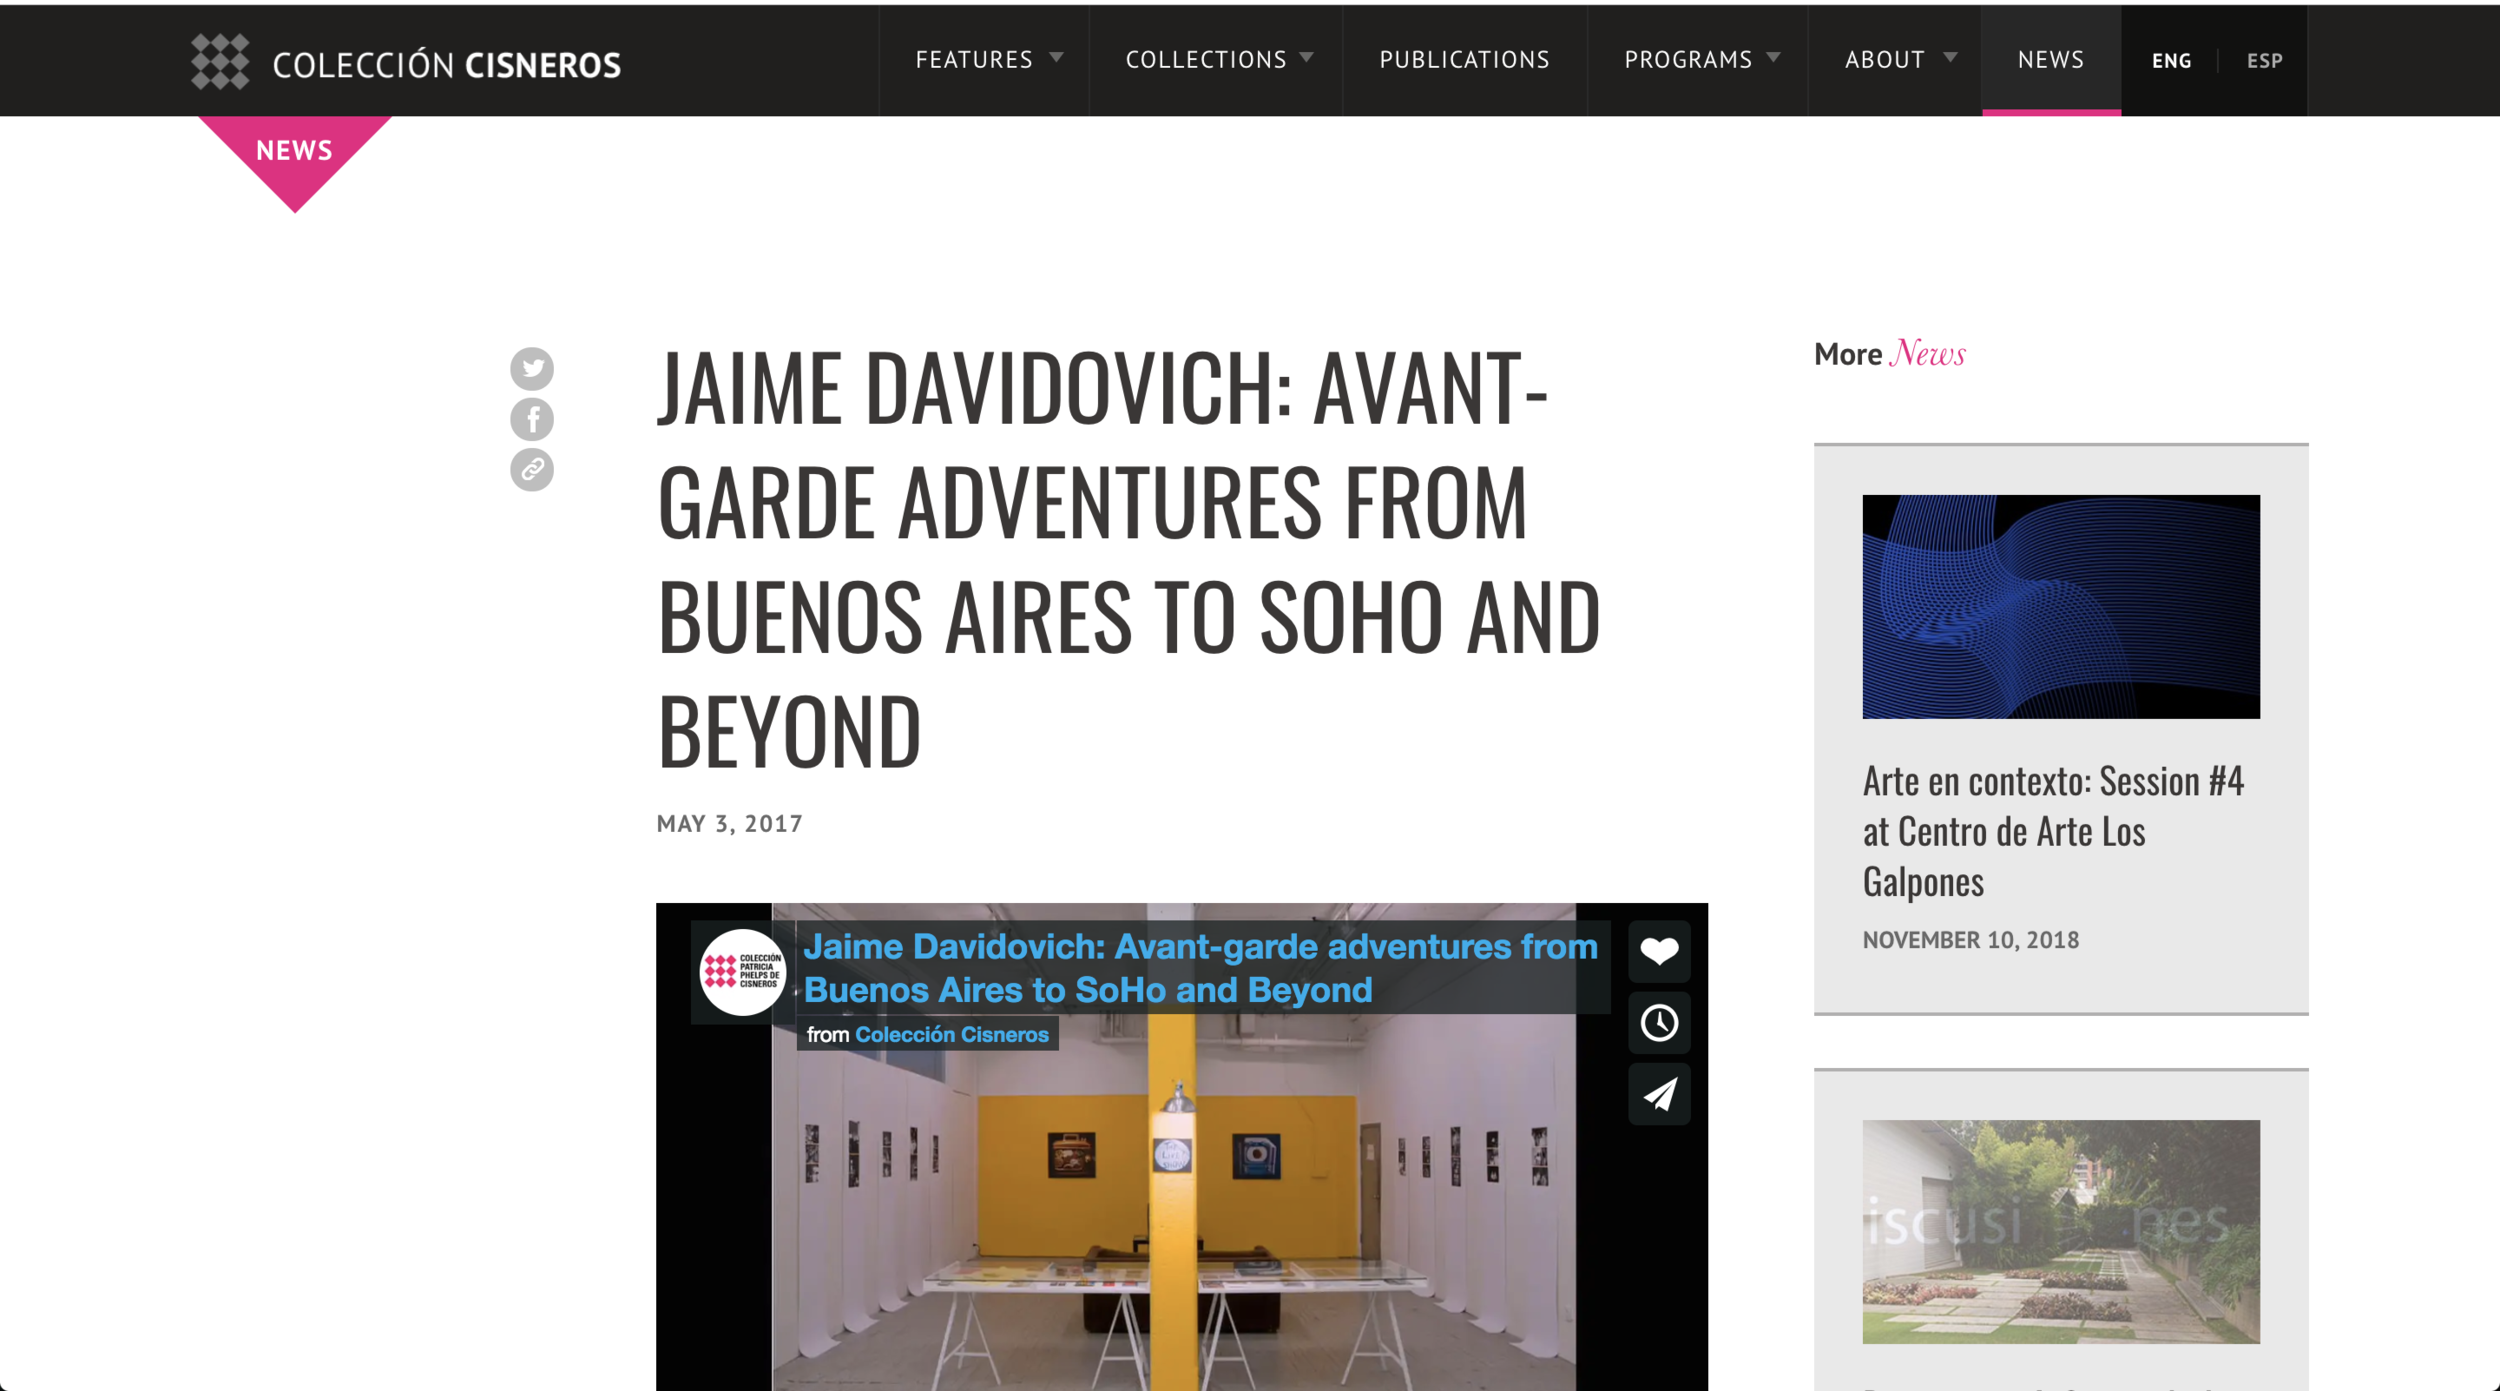 "JAIME DAVIDOVICH: AVANT-GARDE ADVENTURES FROM BUENOS AIRES TO SOHO AND BEYOND - Colección Cisneros - May 3rd, 2017""To celebrate the release of the book Jaime Davidovich in conversation with/en conversación con Daniel R. Quiles, the Colección Patricia Phelps de Cisneros (CPPC) and Institute for Studies on Latin American Art (ISLAA) will present the panel discussion Jaime Davidovich: Avant-Garde Adventures from Buenos Aires to SoHo and Beyond, related to the publication at The Museum of Modern Art's Celeste Bartos Theater."""